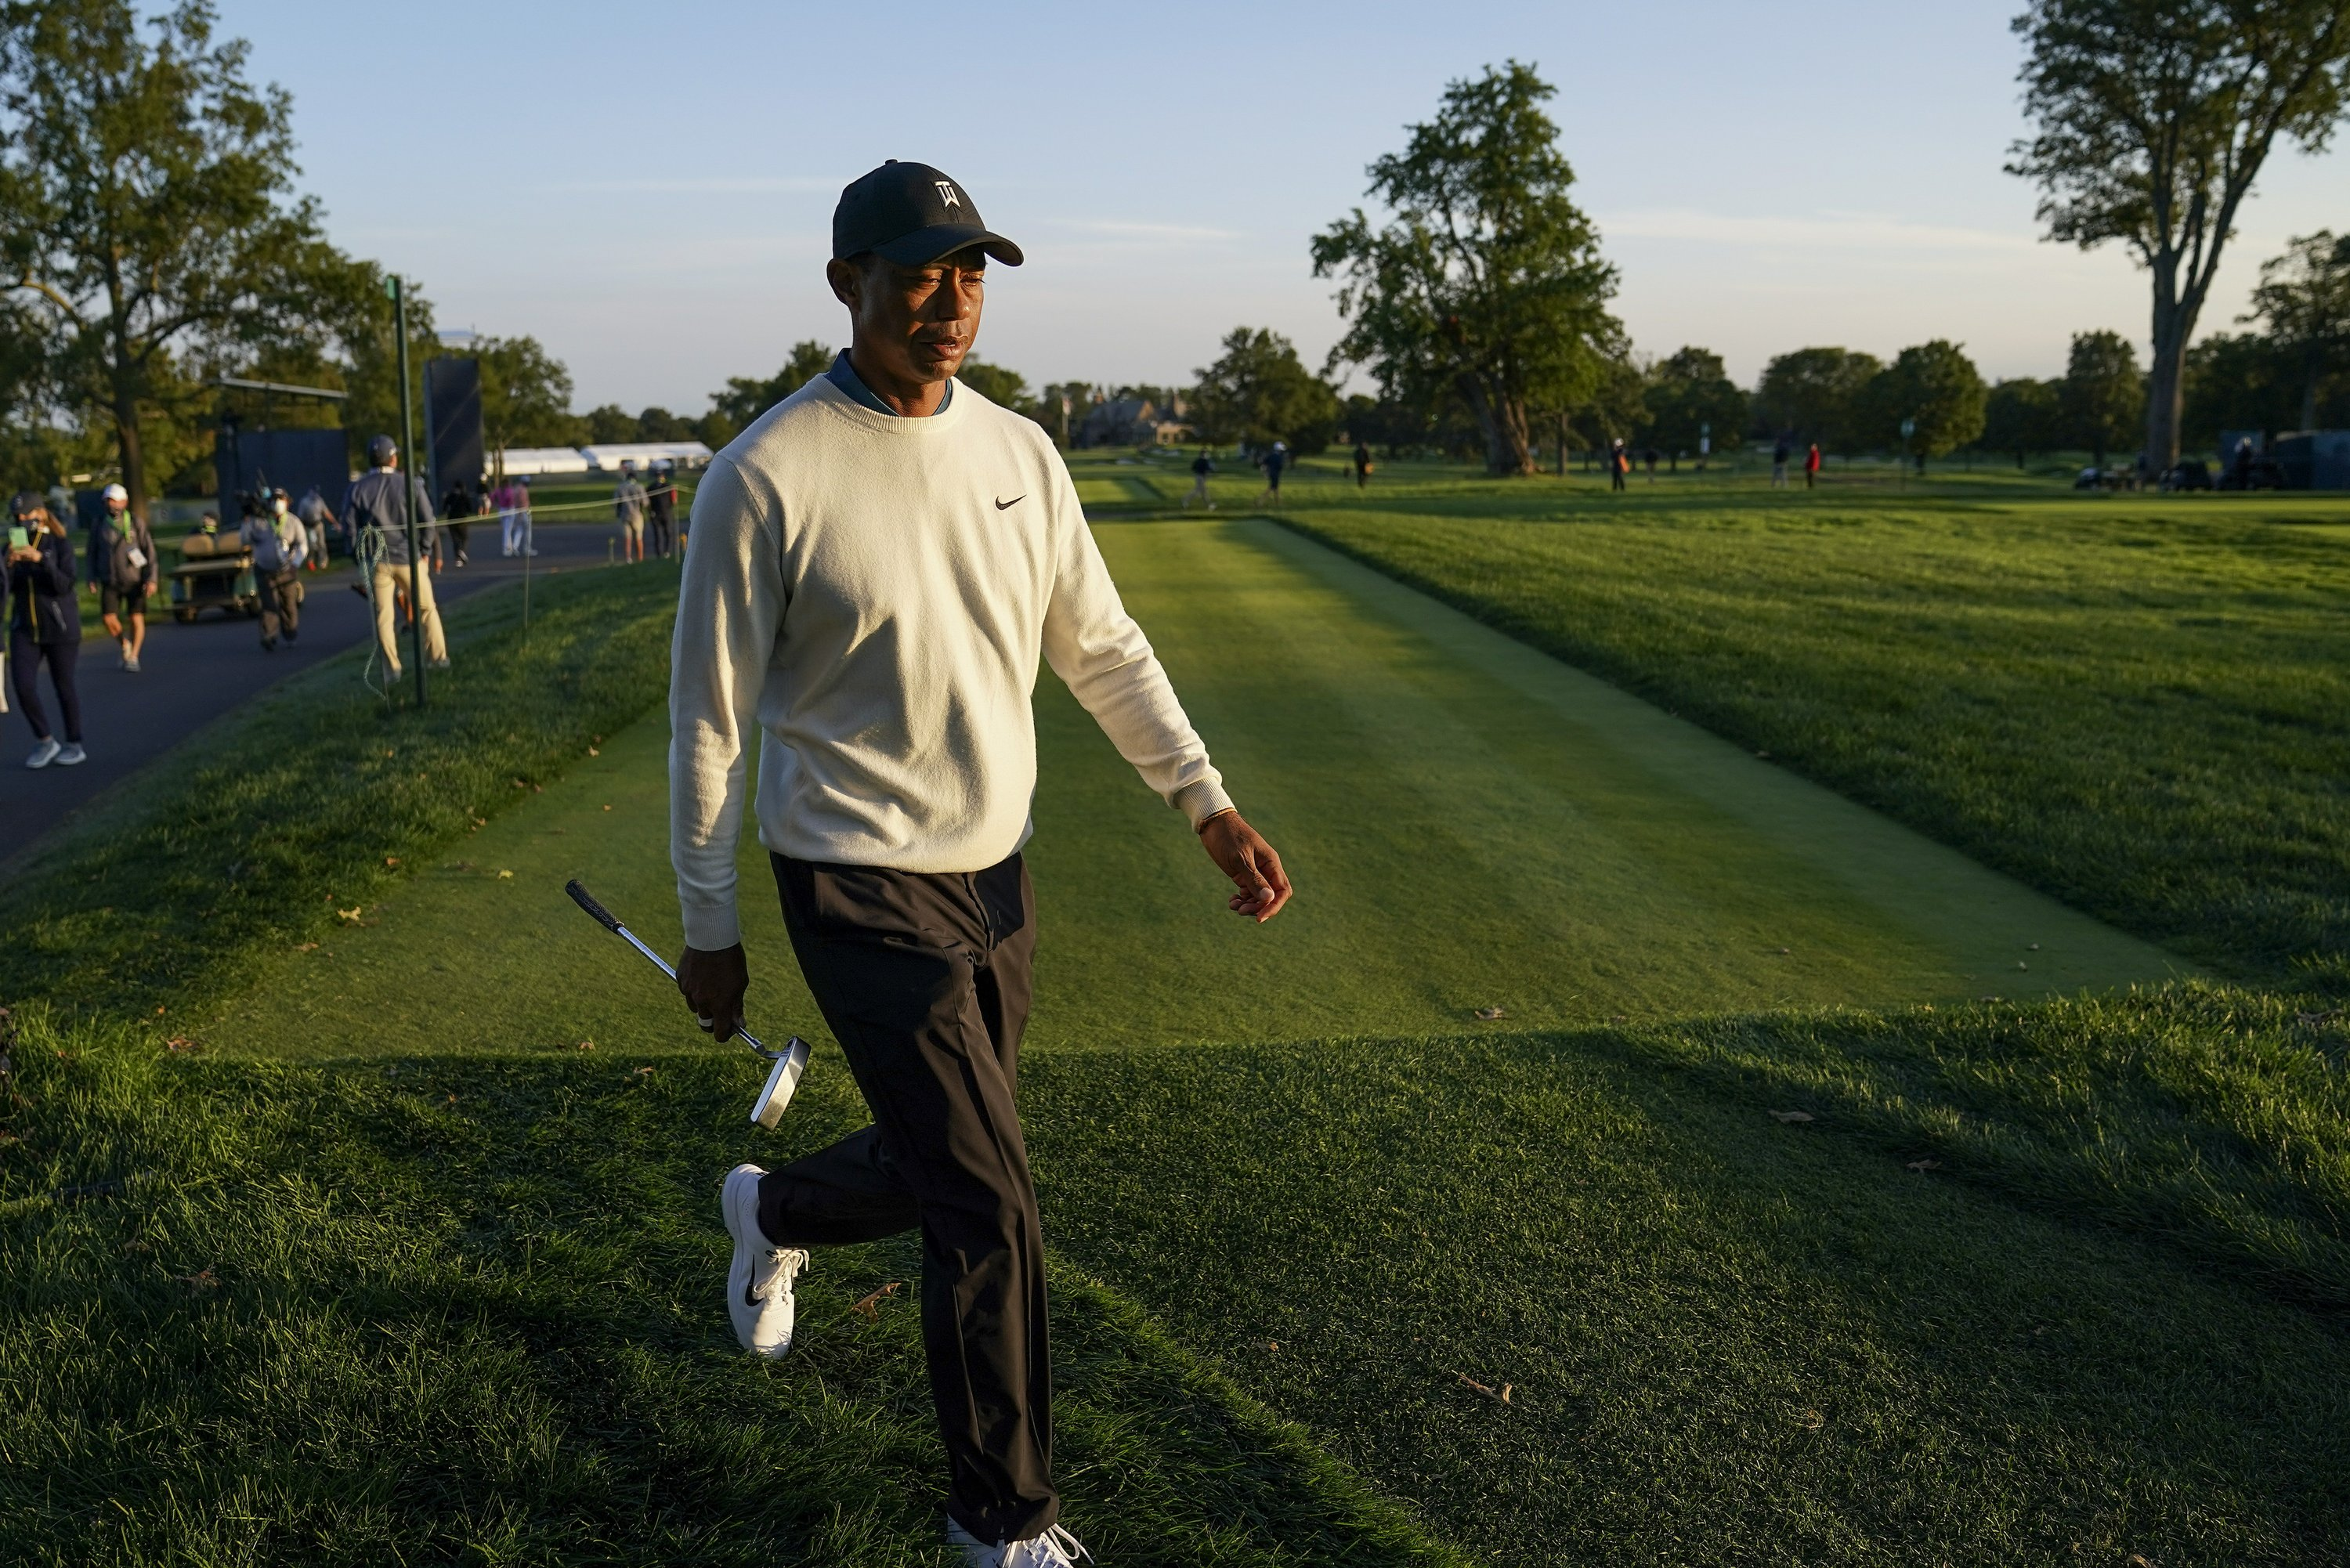 Column: Another major mishap by Tiger Woods at US Open